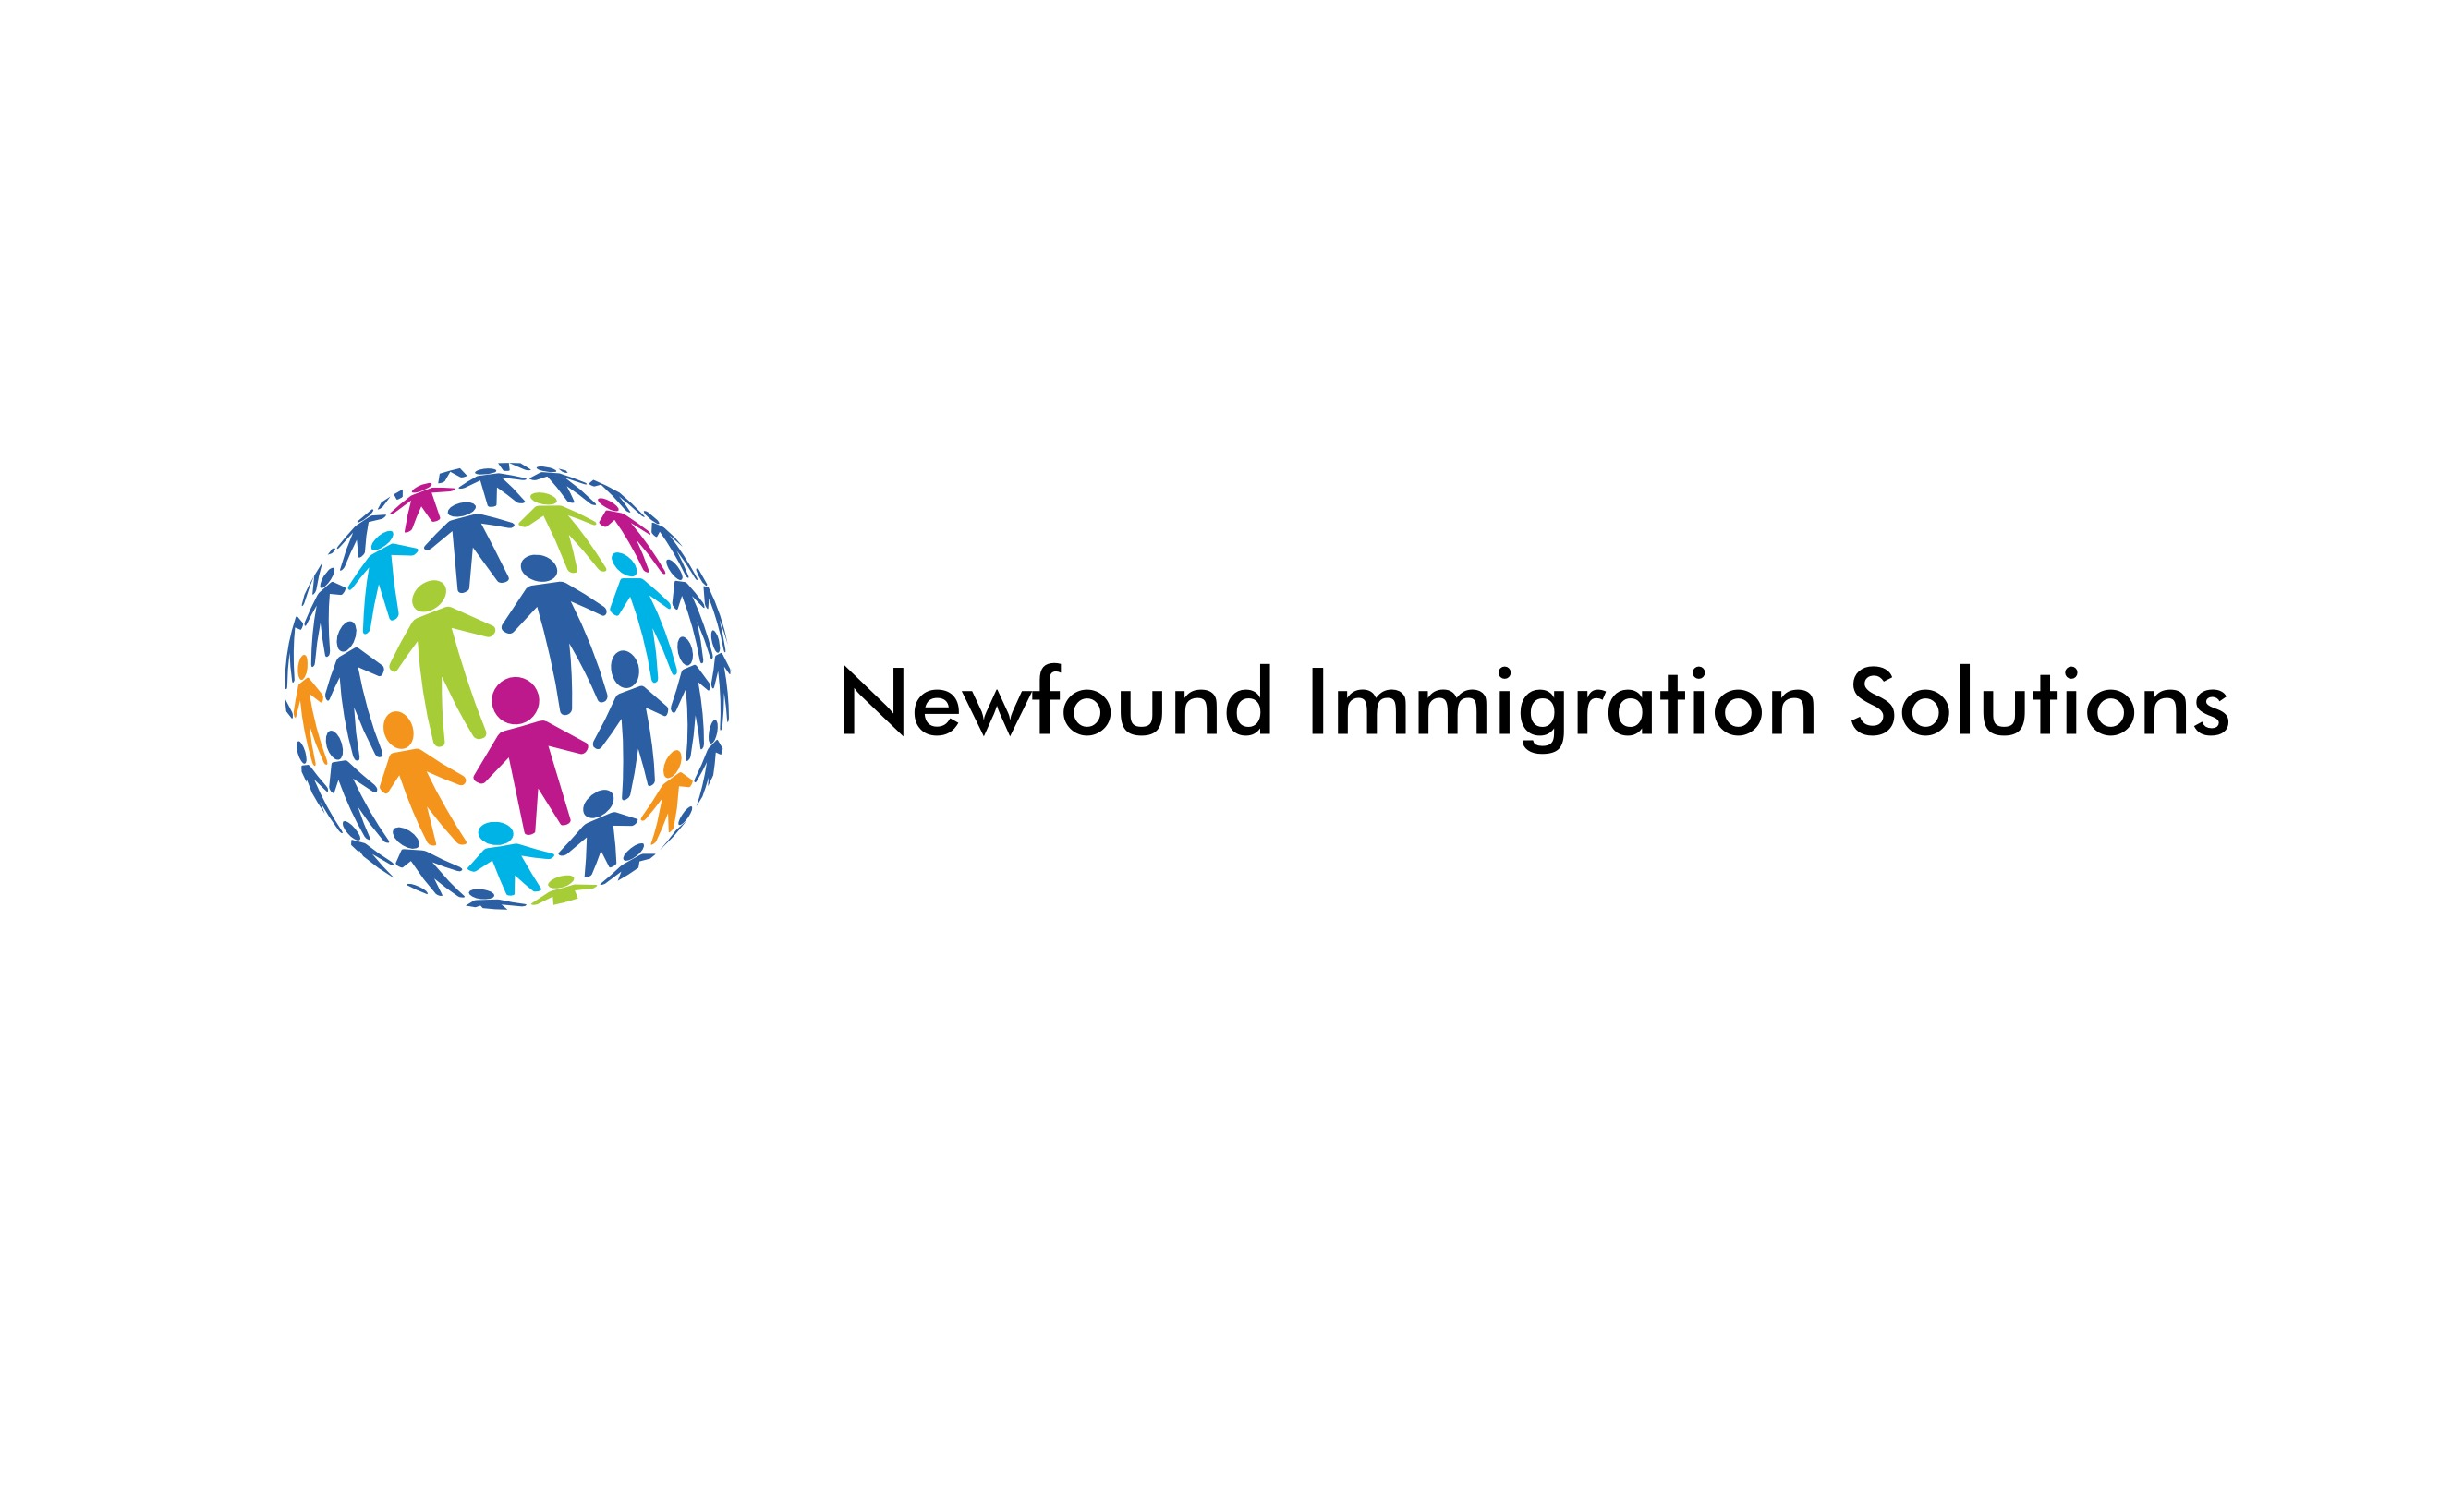 Newfound Immigration Solutions logo